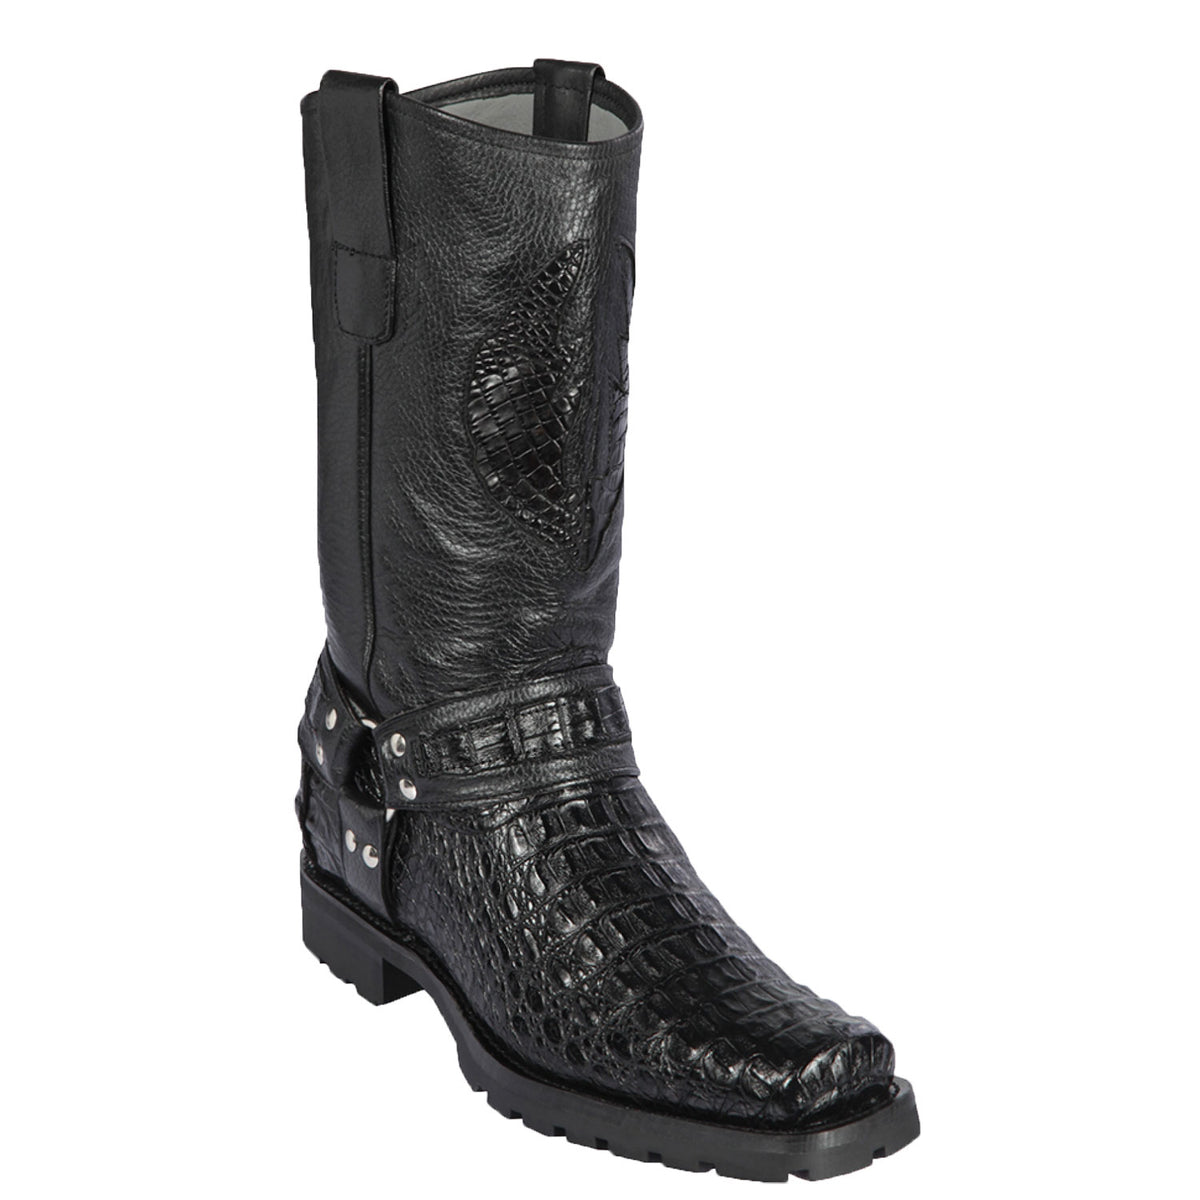 Smooth Caiman Skin Biker Boot LAB-55T17